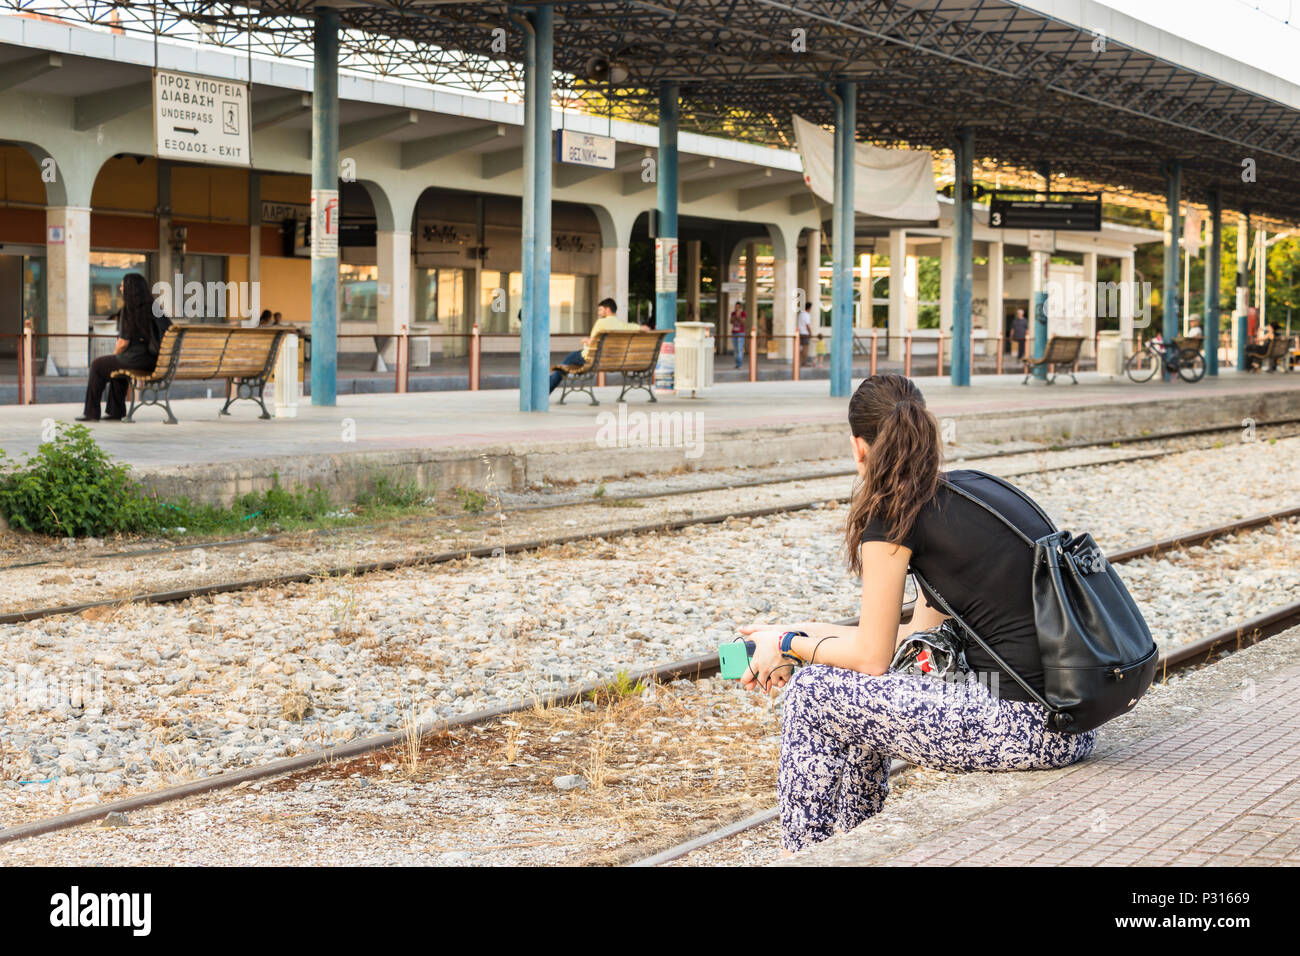 Larissa, Greece - June 11th, 2018: A young woman sitting looking away on the passengers platform in the Larissa train Station. - Stock Image